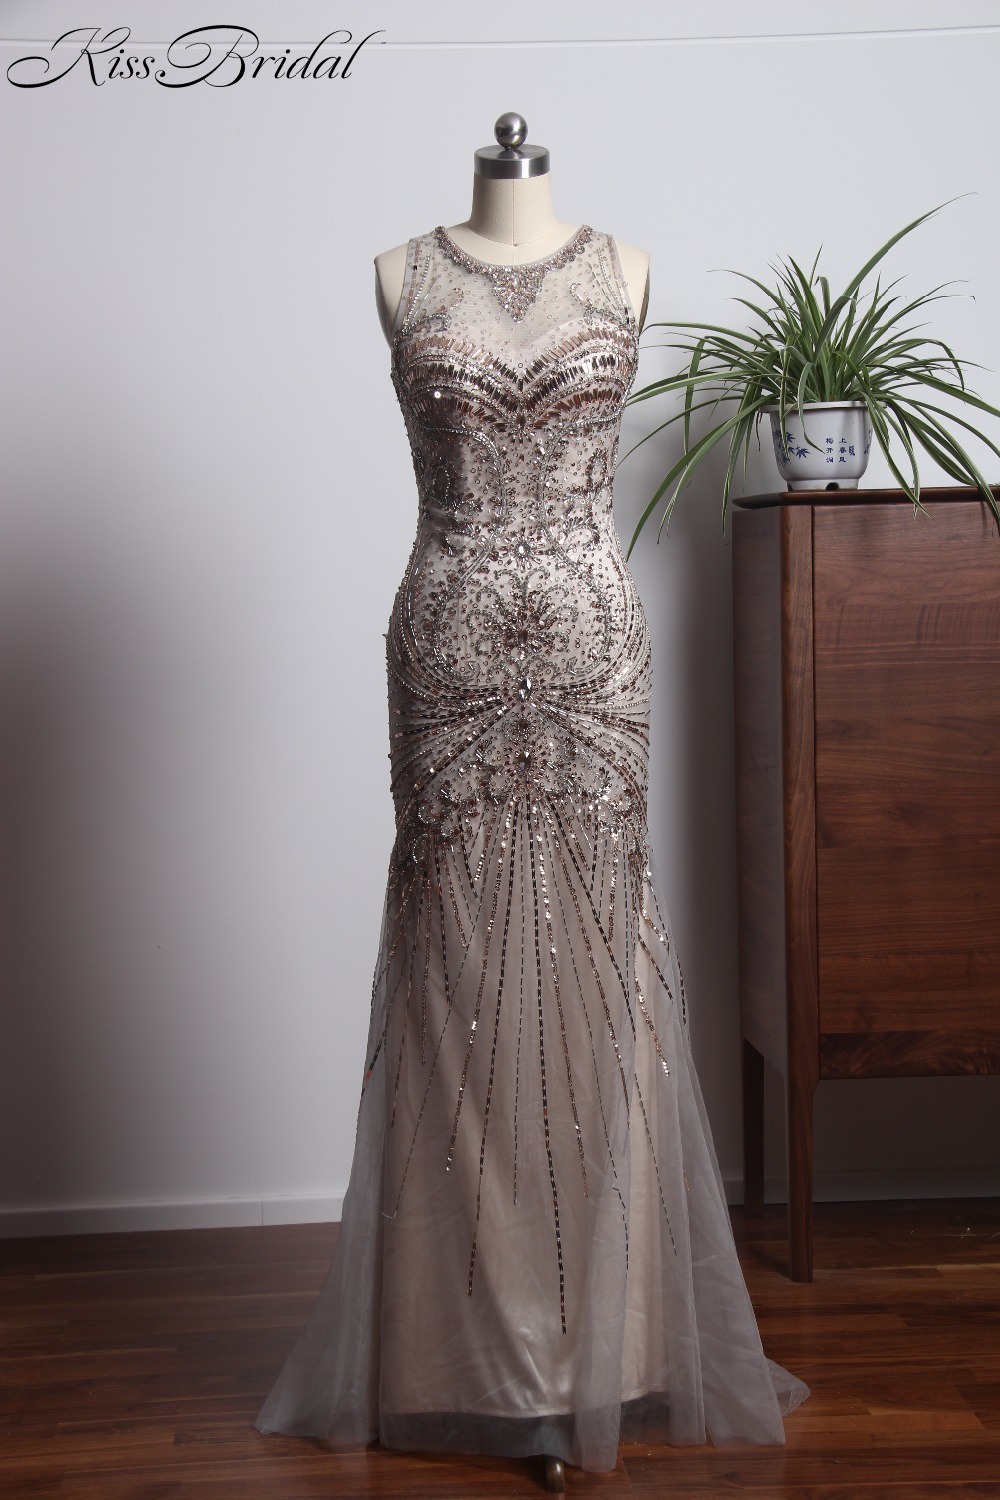 Us 2059 Vestidos Largos De Noche 2018 Luxurious Evening Dresses Long Beading Sequin Mermaid Evening Party Prom Gowns In Evening Dresses From